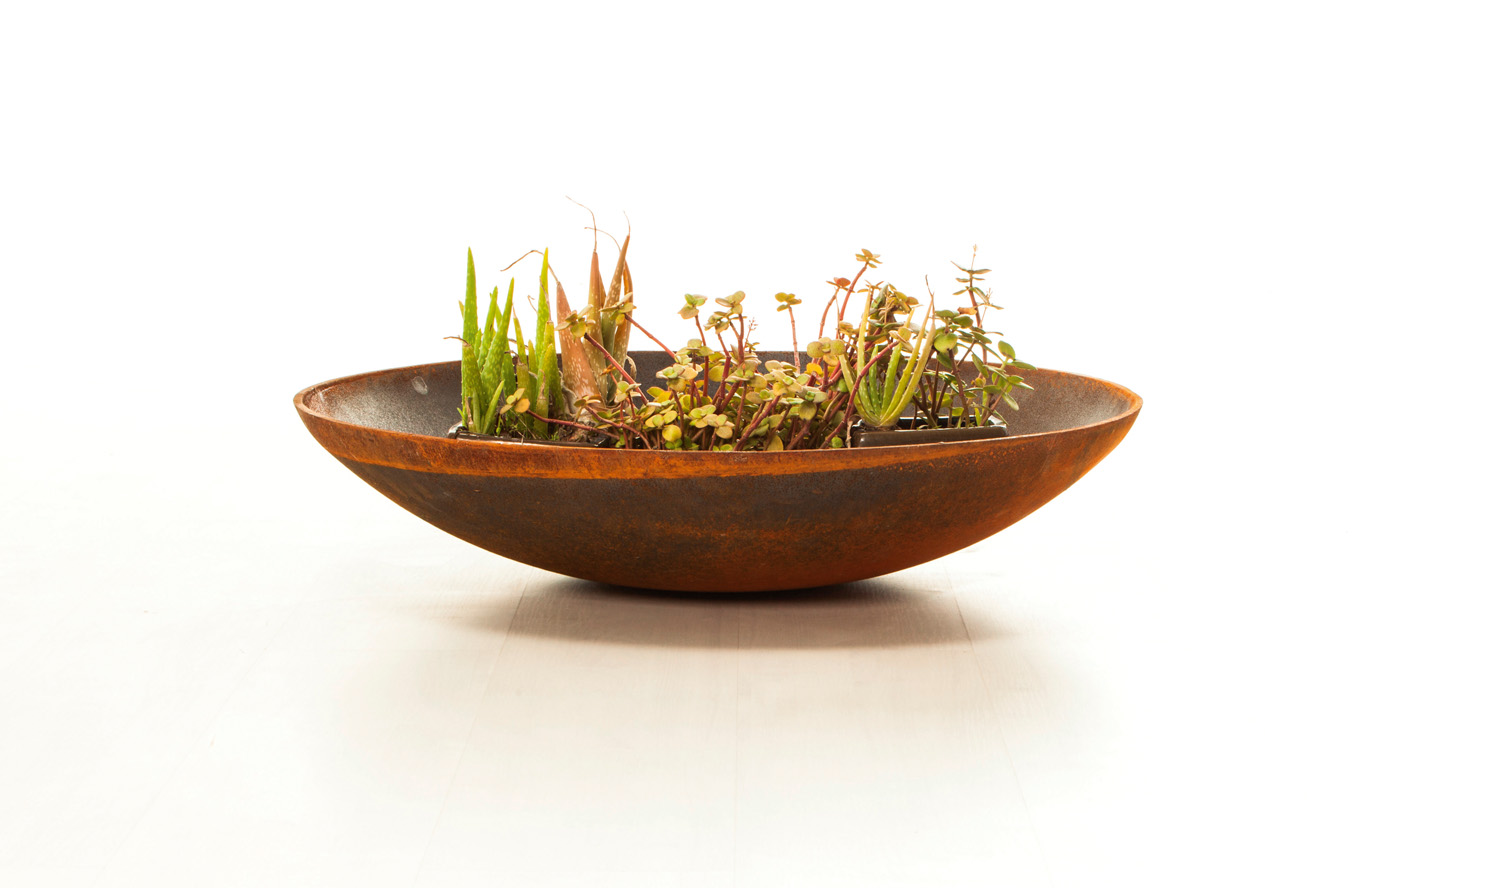 The Casting Bowl, which doubles as a fire bowl, from Entanglements www.entanglements.com.au